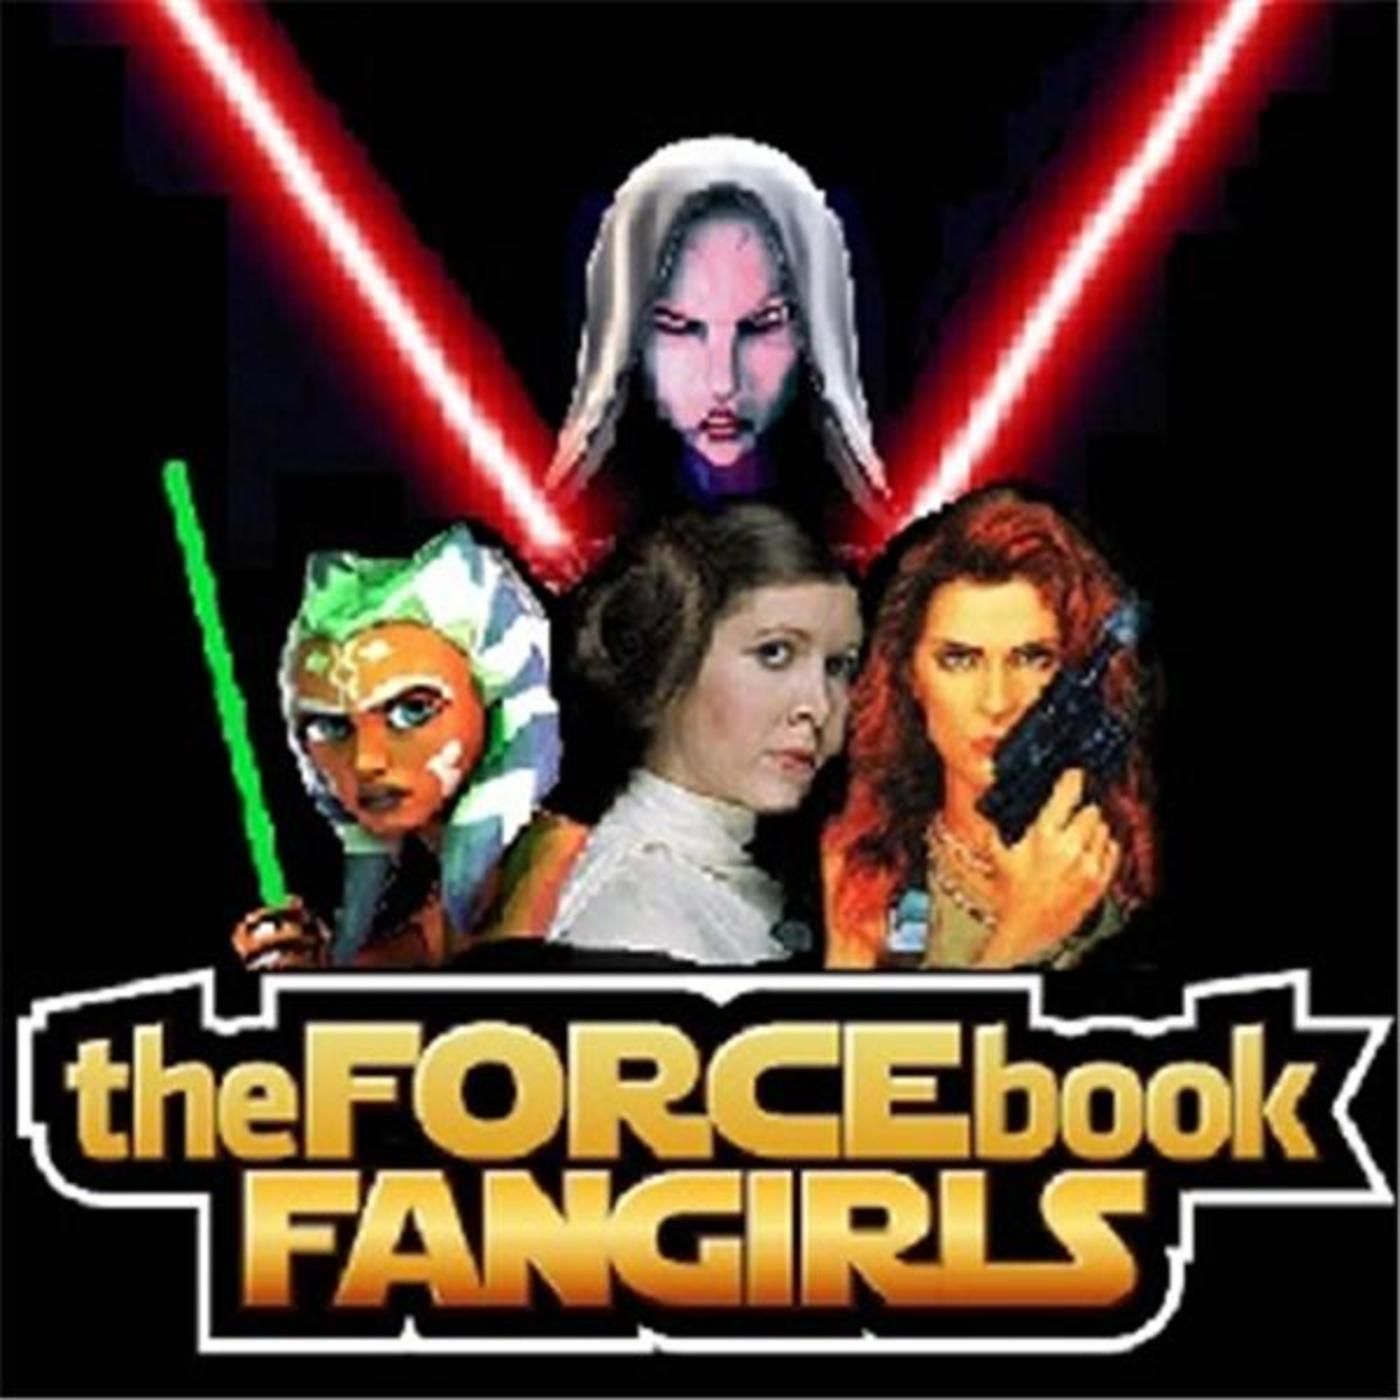 theFORCEbook Fangirls